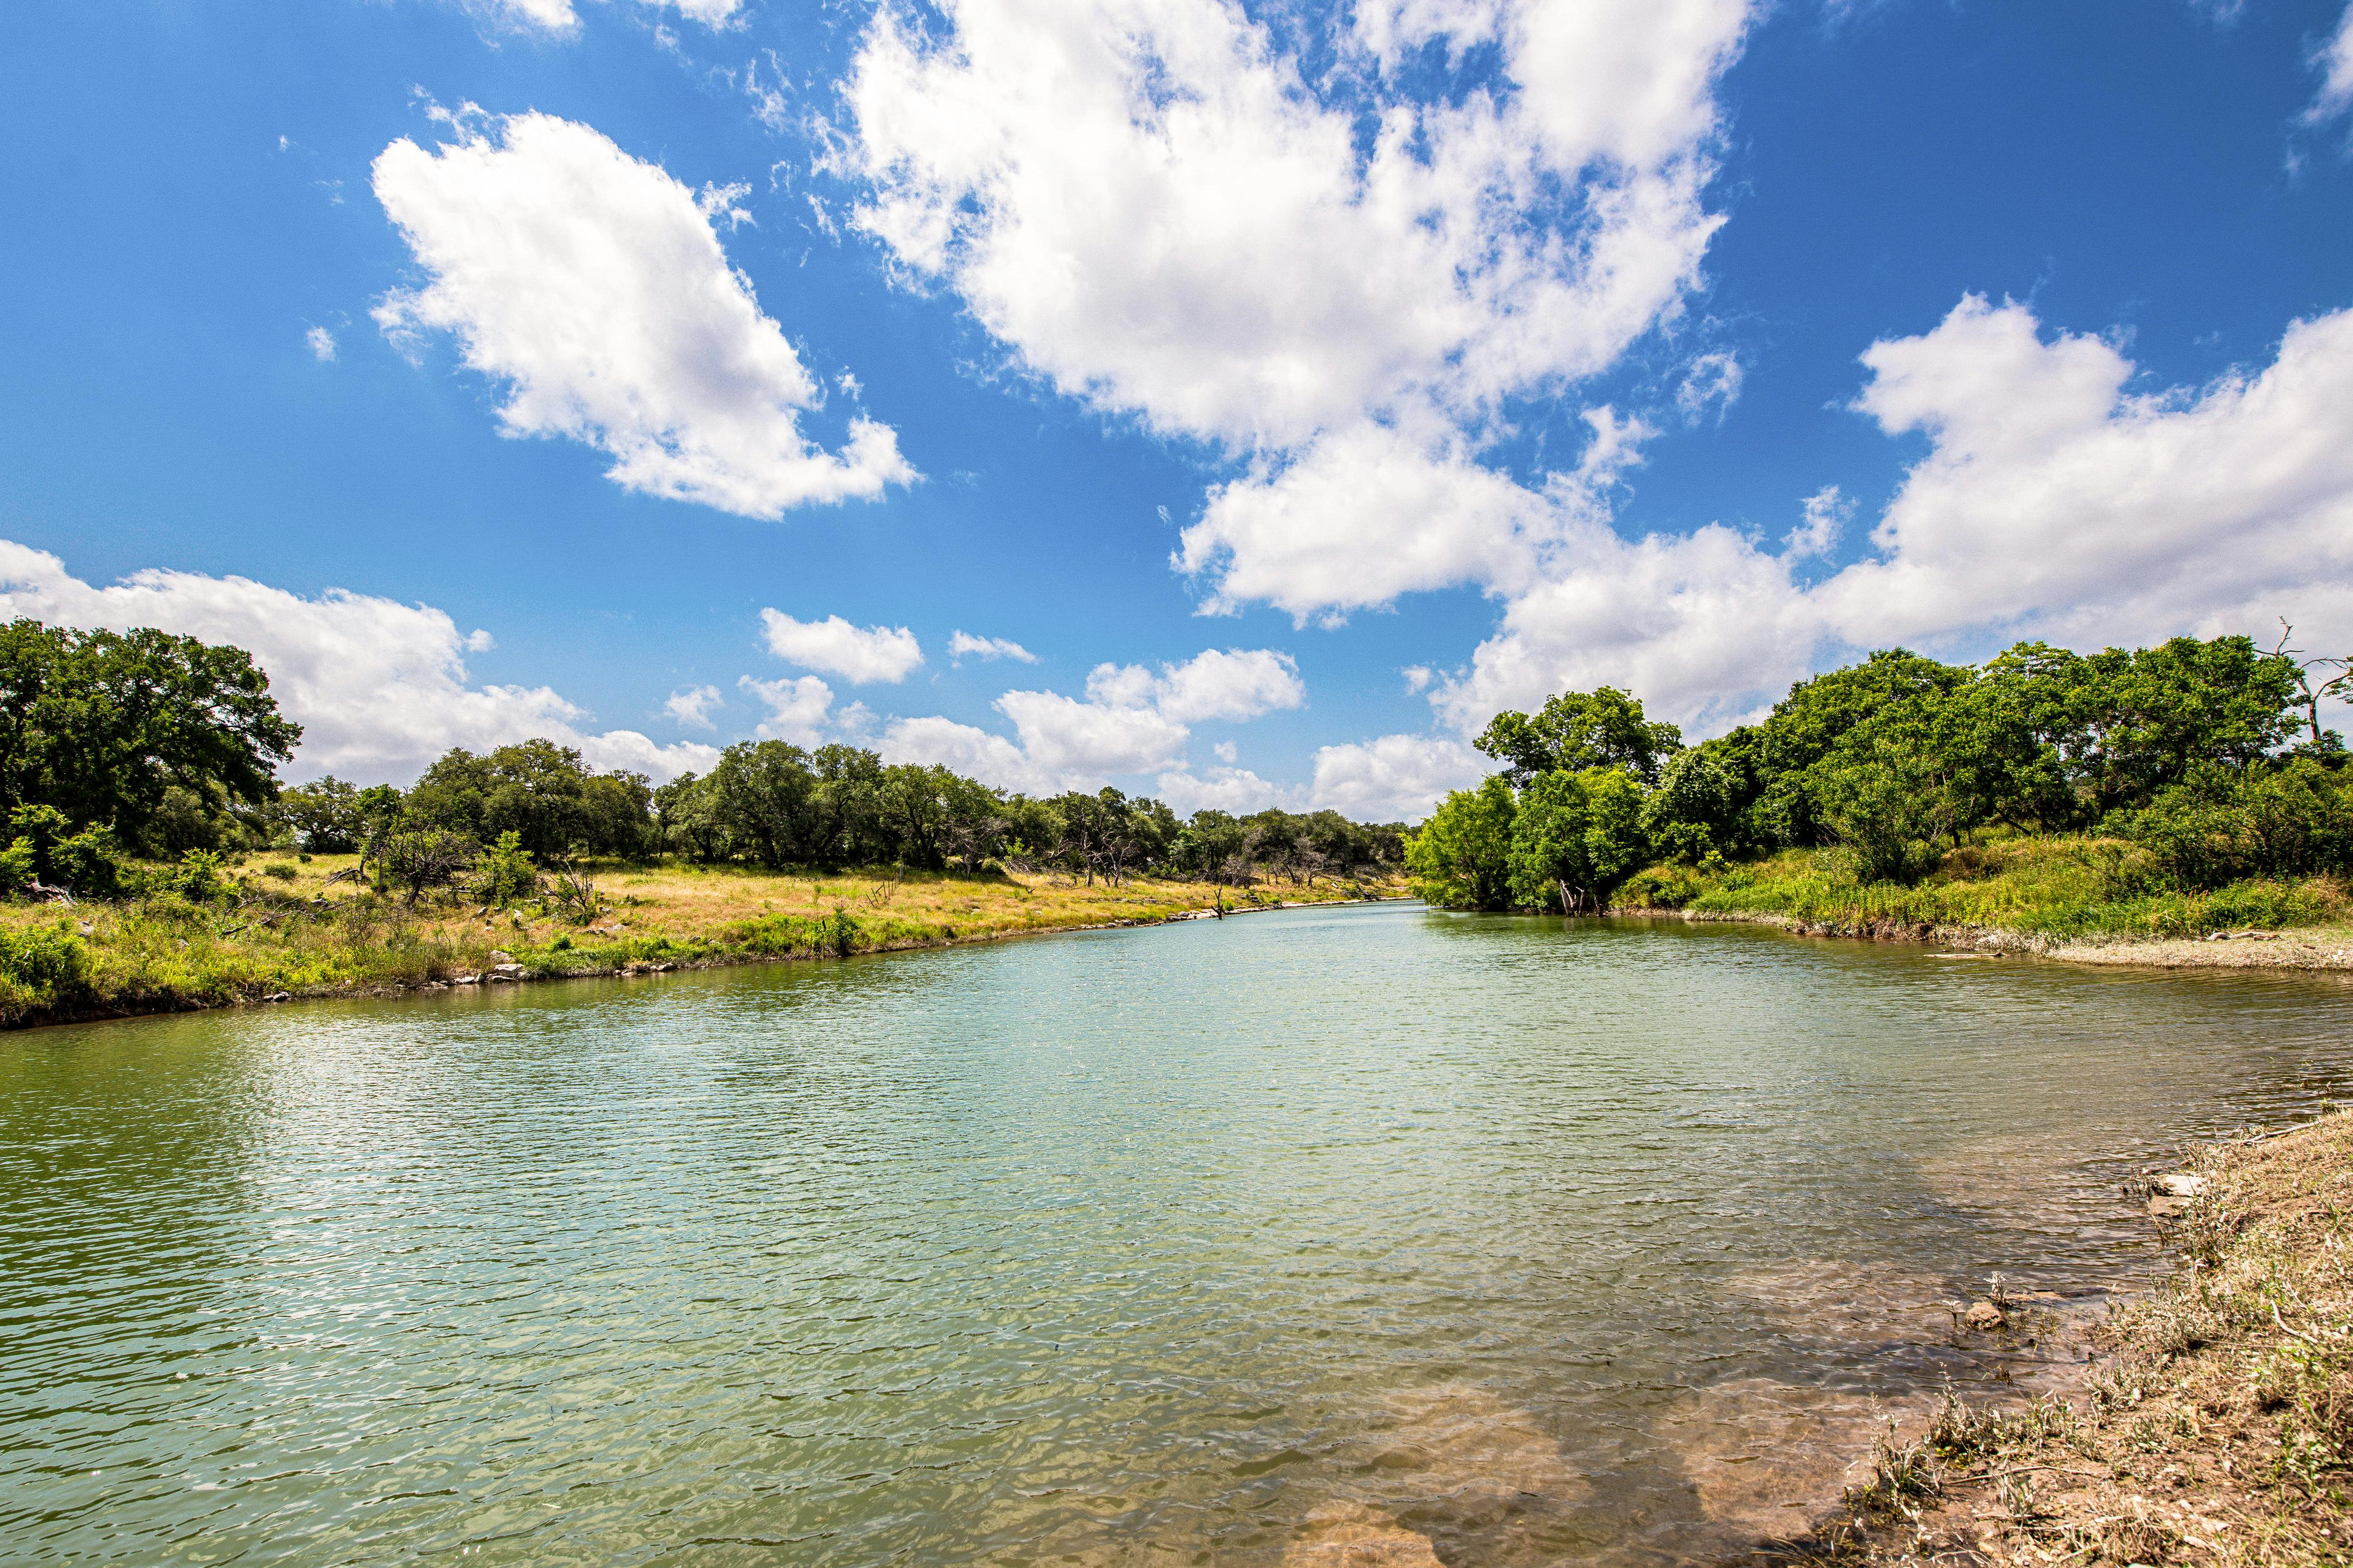 Take a hike to nearby lakes in the Texas Hill Country.